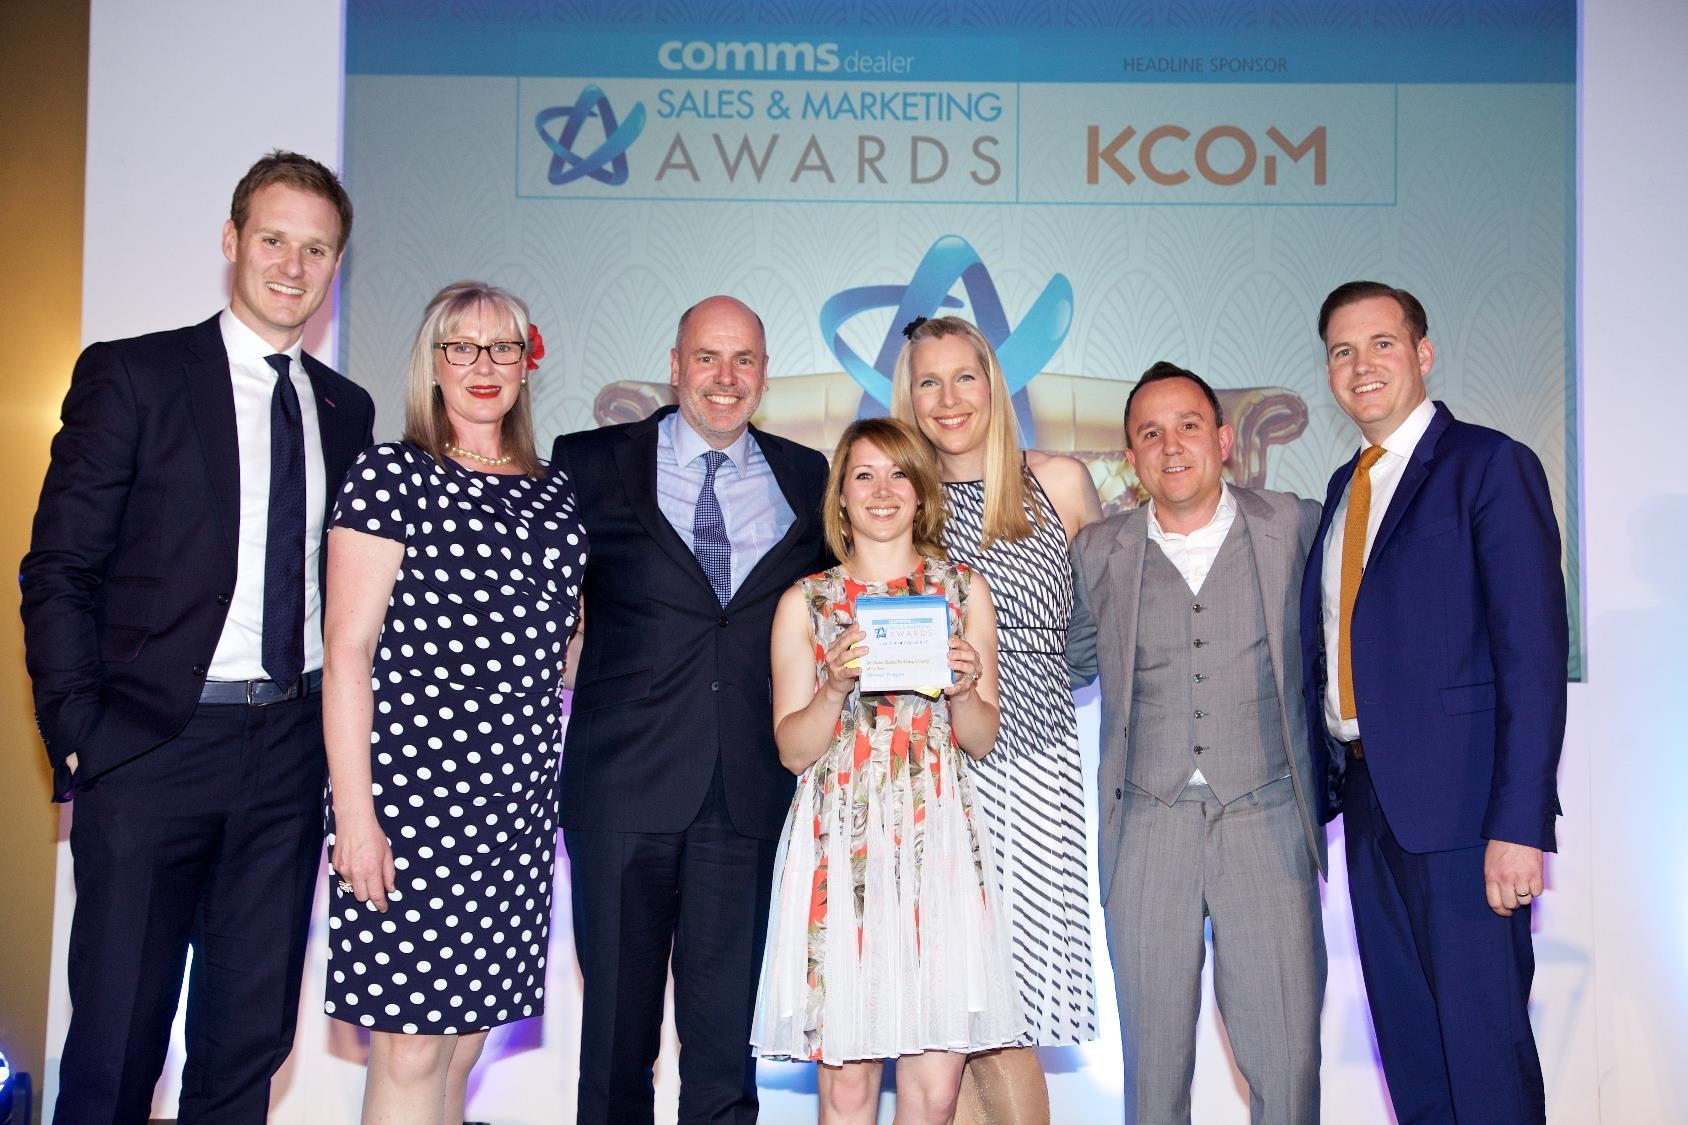 Comms Dealer Award Photo 2016 - Copy